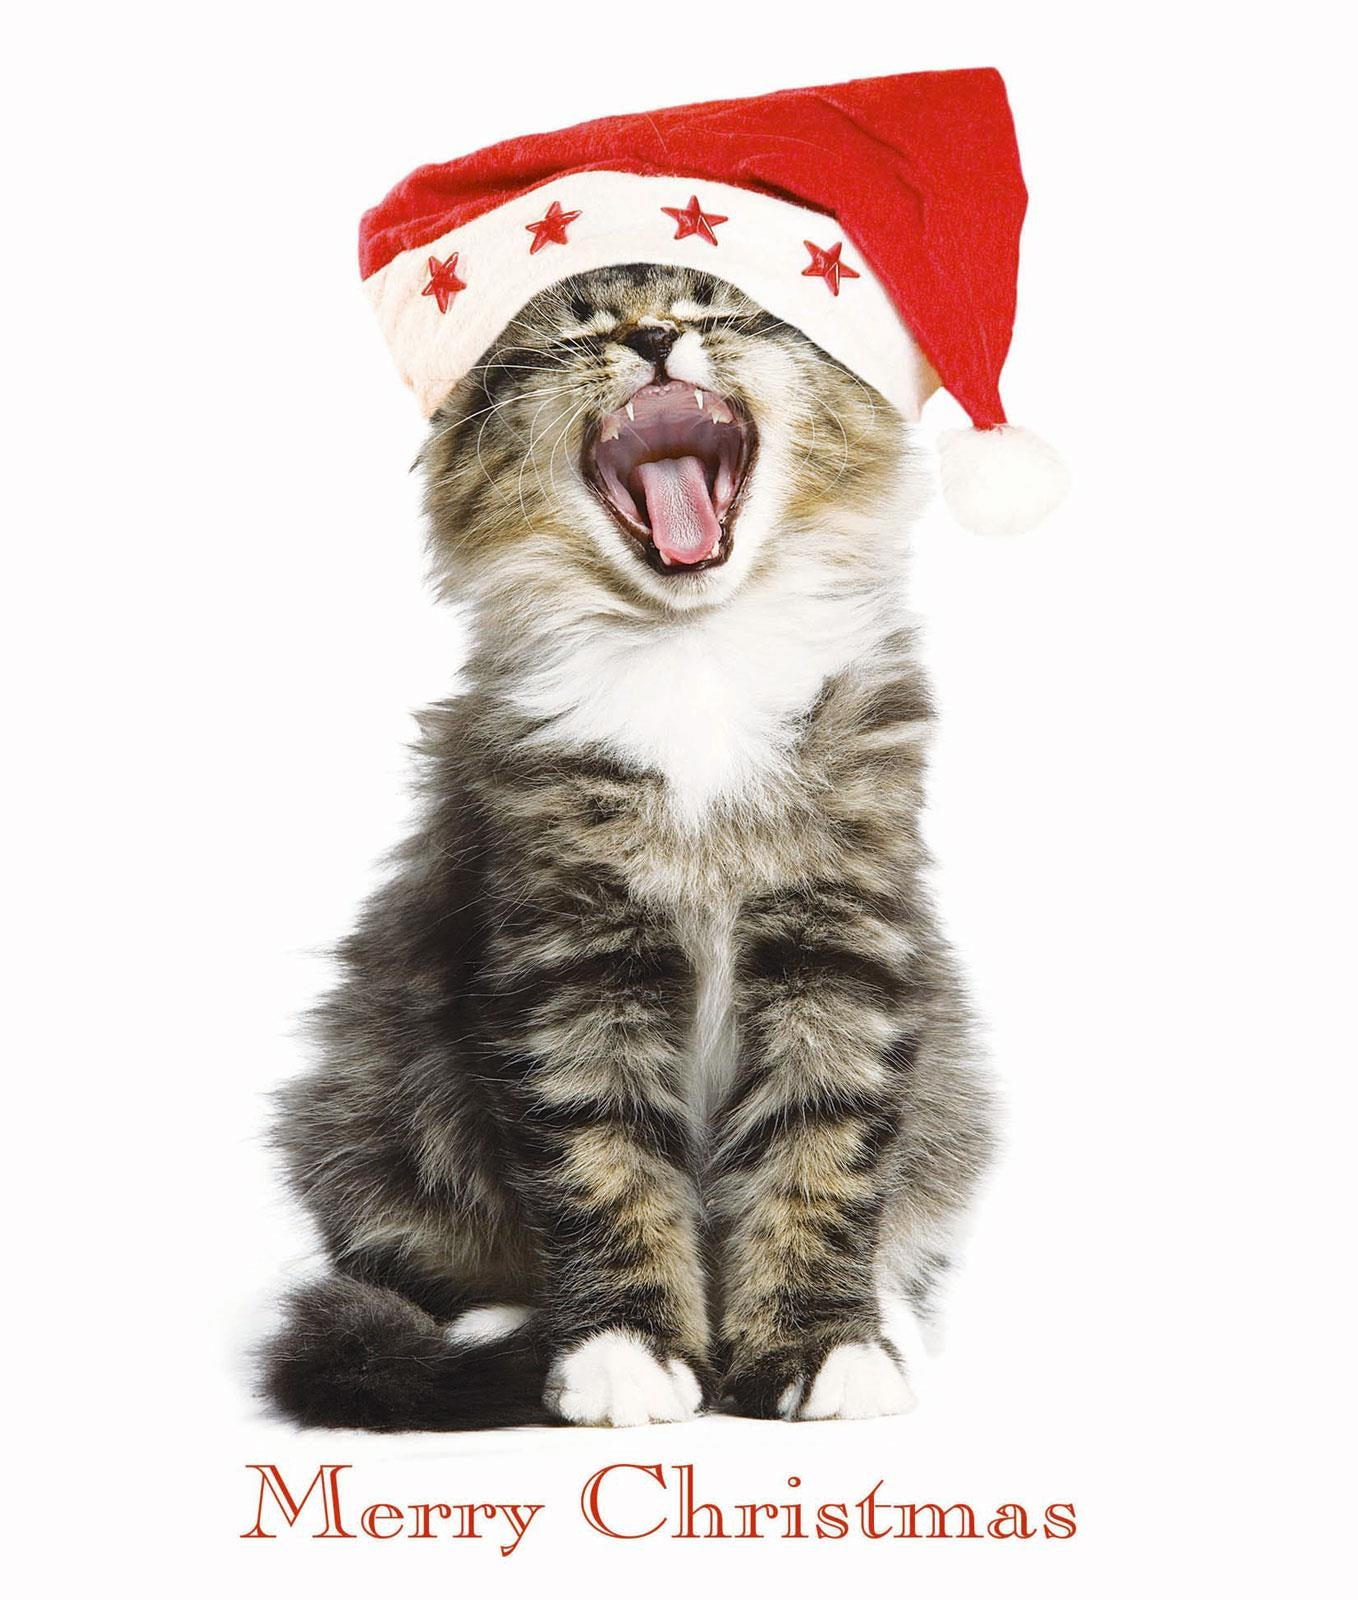 Kitty Chorus Cat Christmas Greeting Card